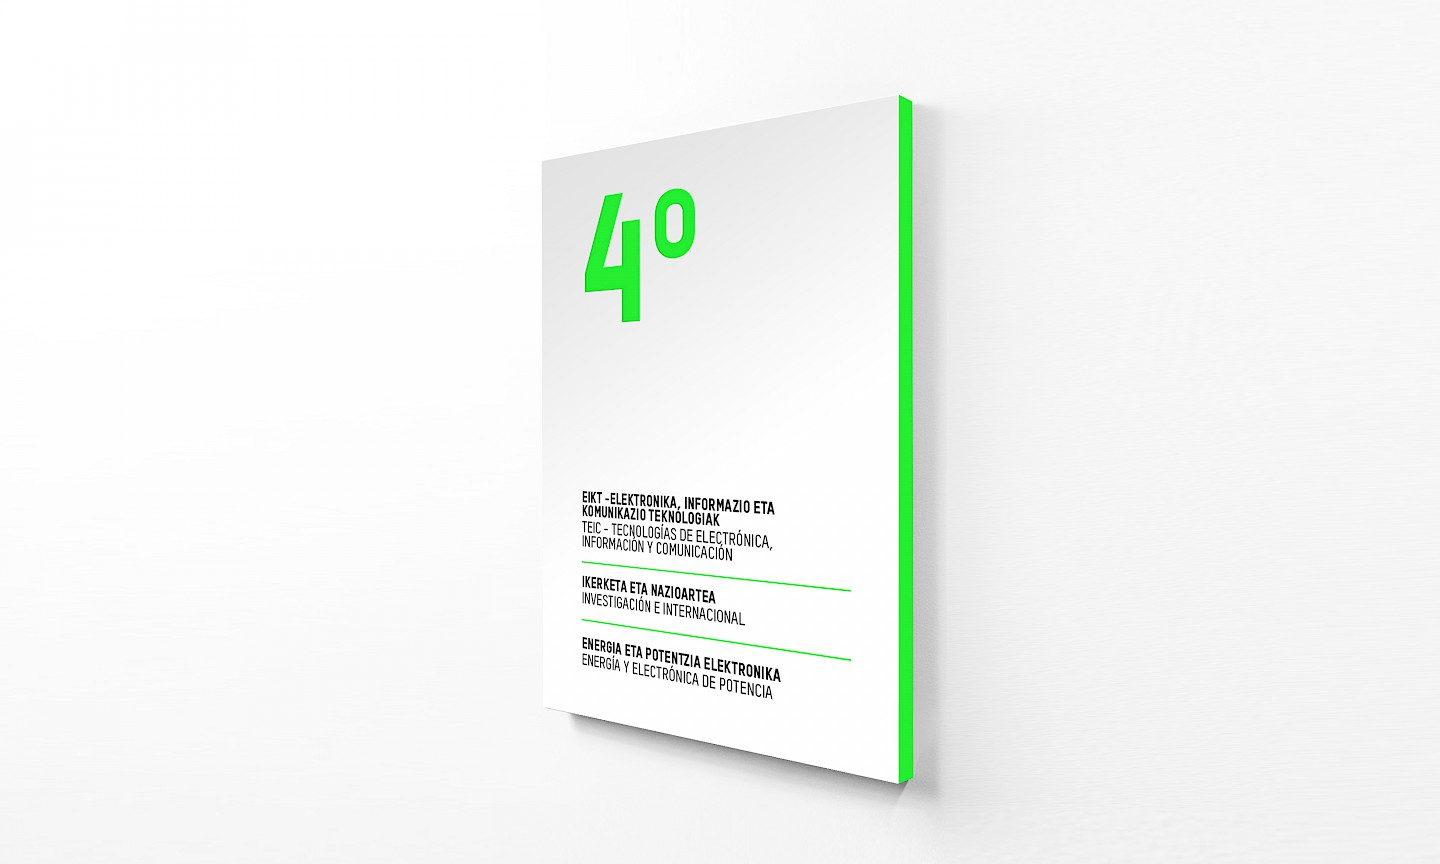 technology move ikerlan design branding environment_6